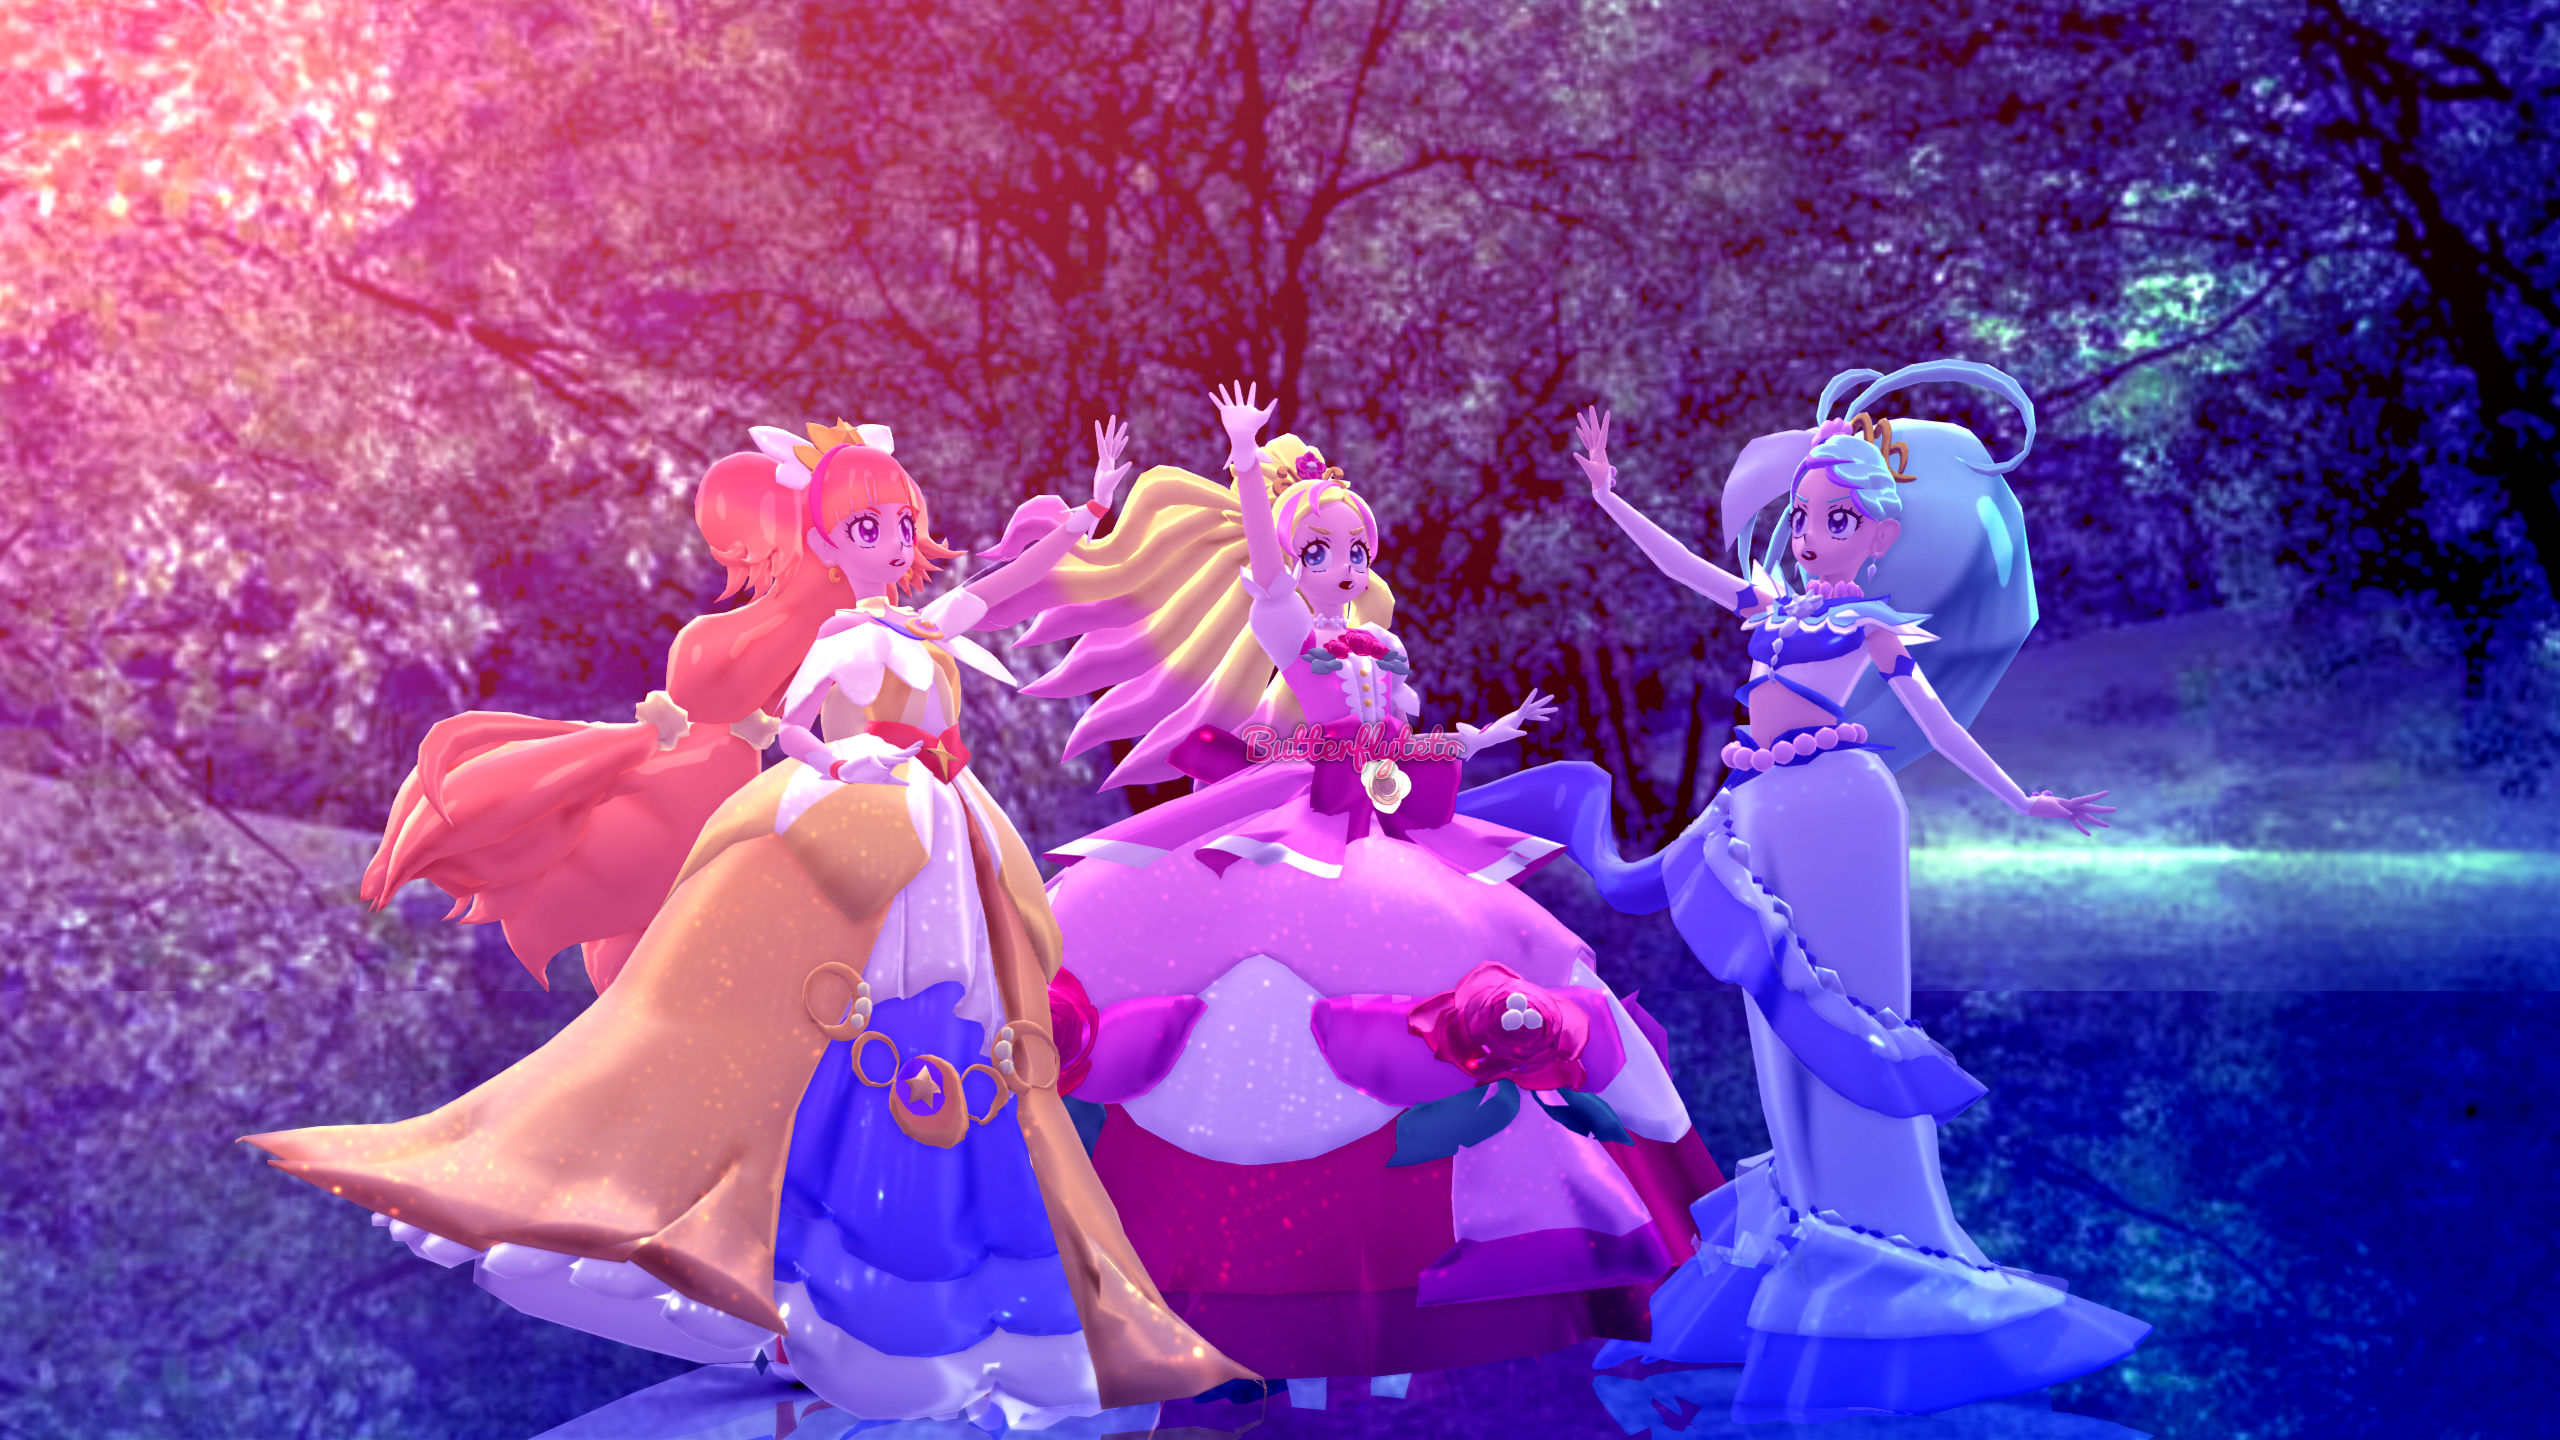 Mmd X Go Princess Precure All Together Now By Butterflyteto On